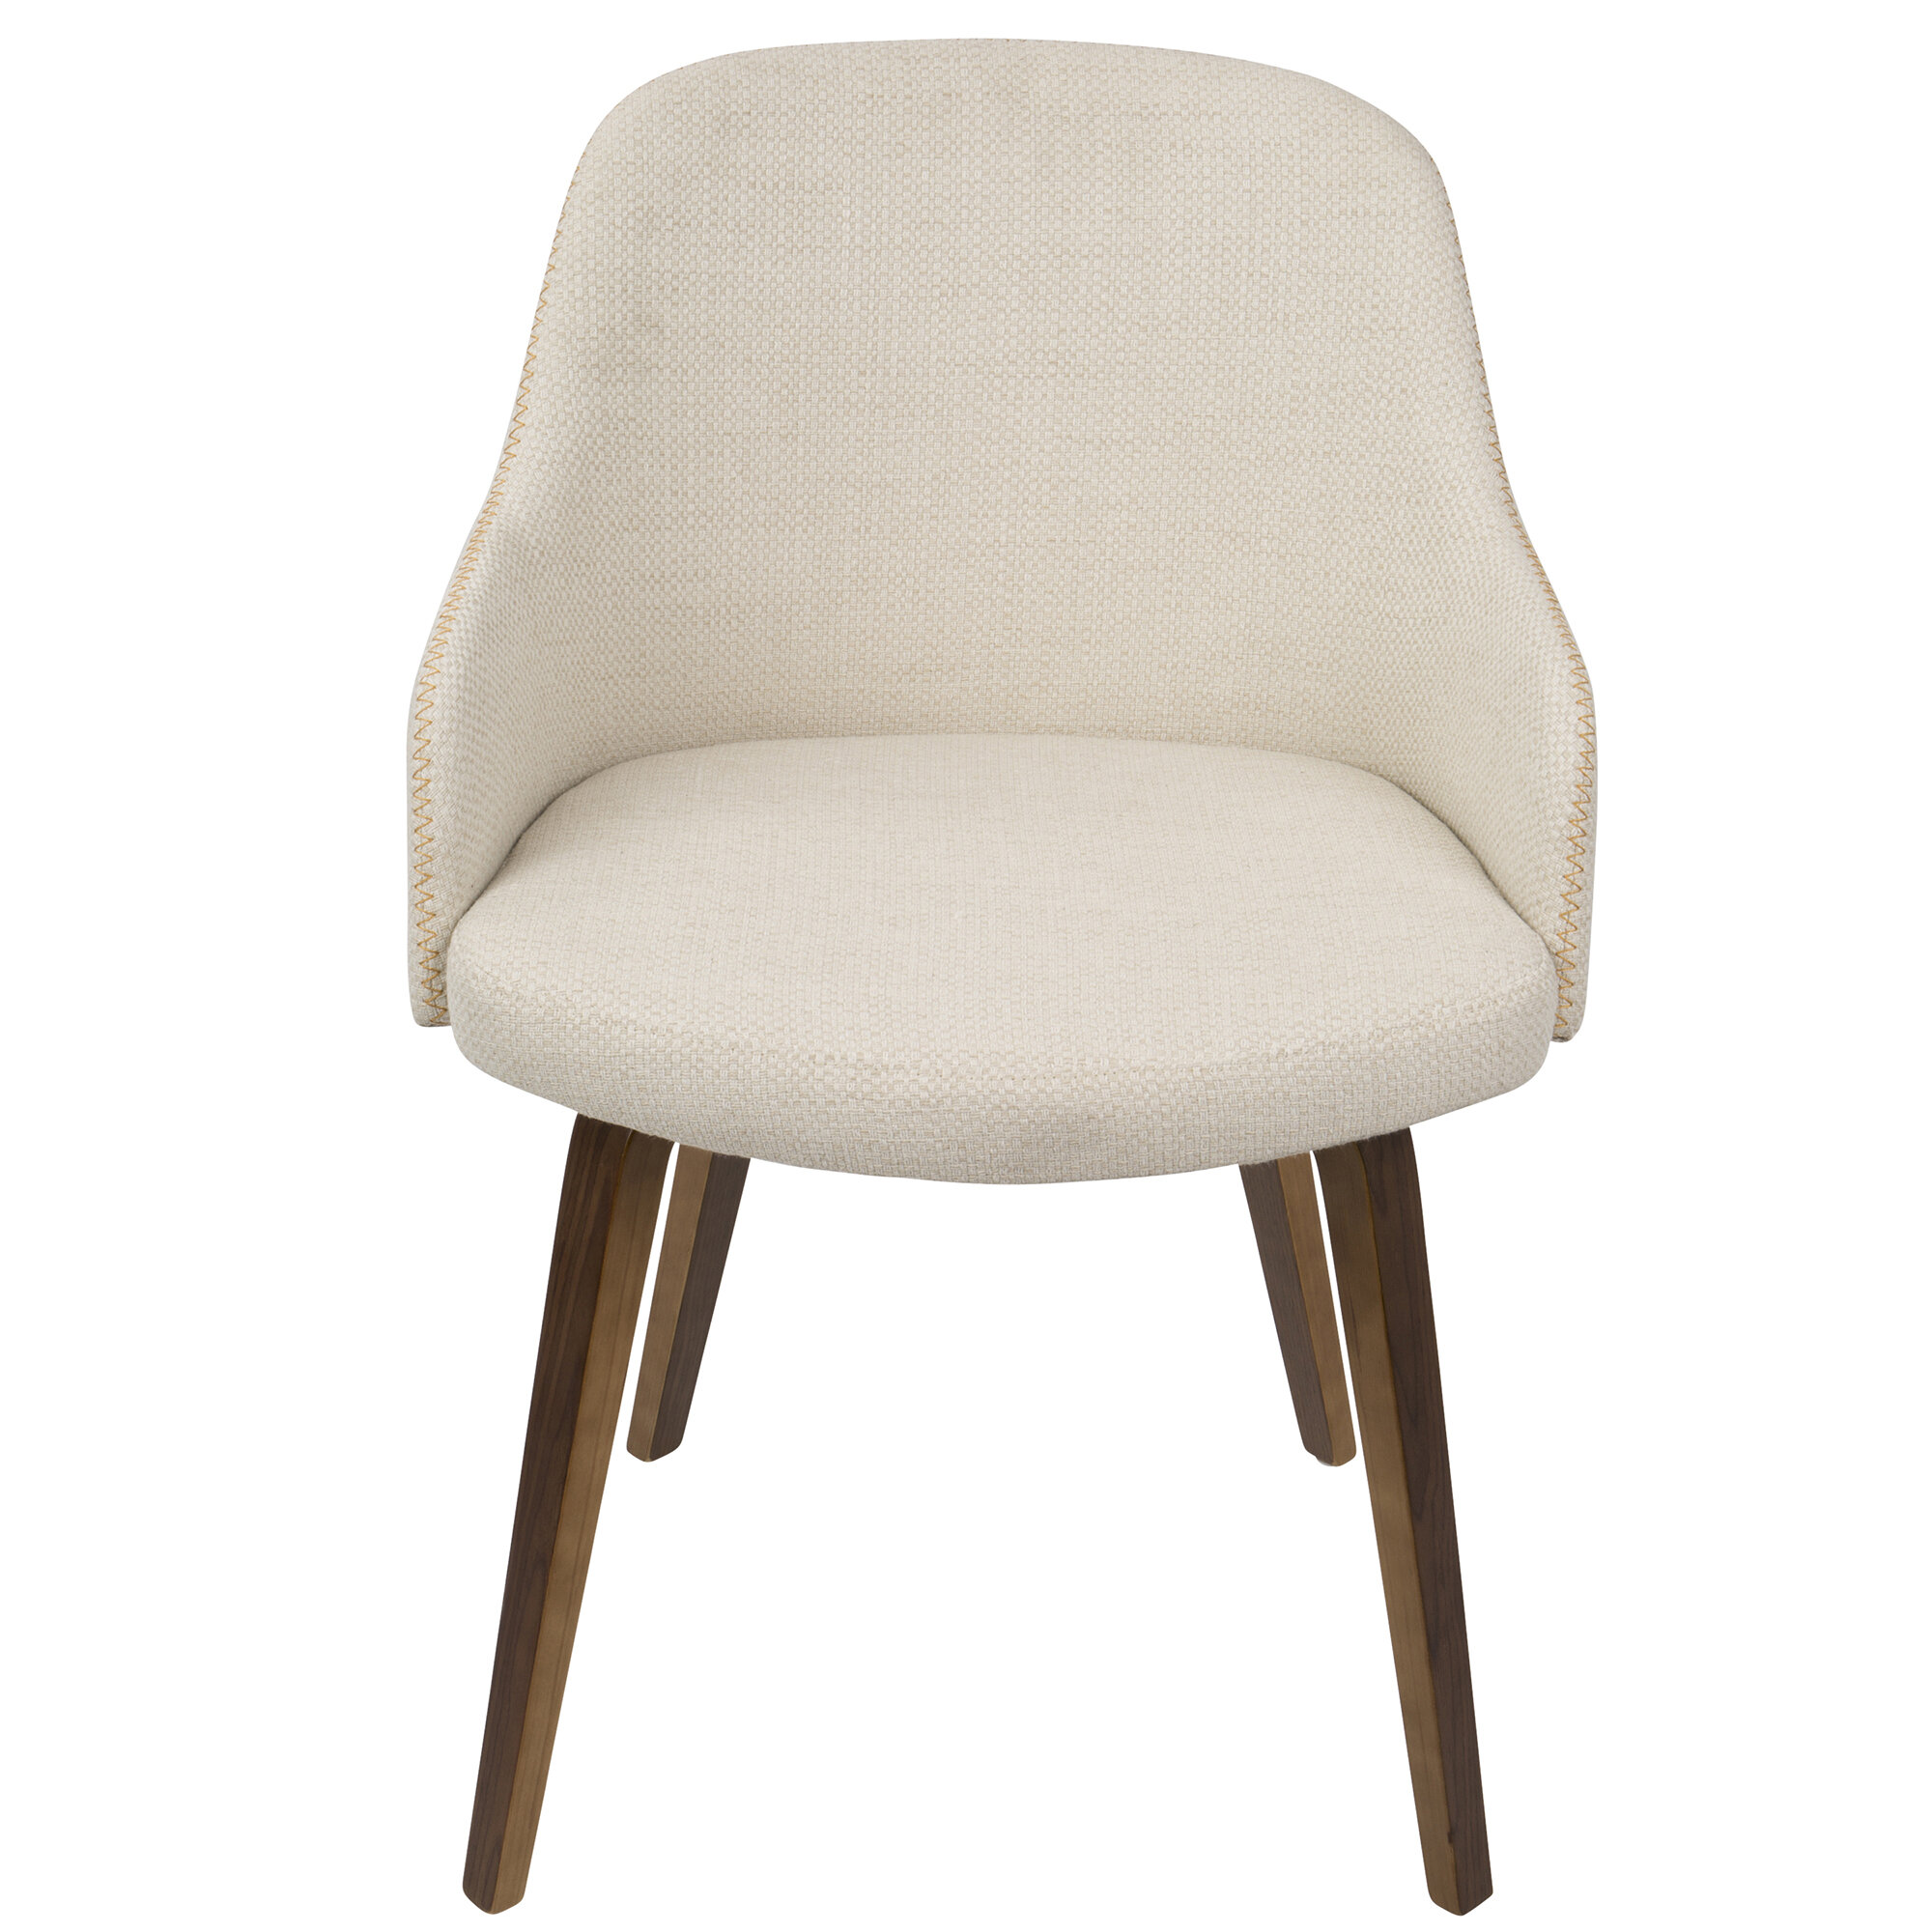 Genial George Oliver Brighton Mid Century Modern Upholstered Dining Chair